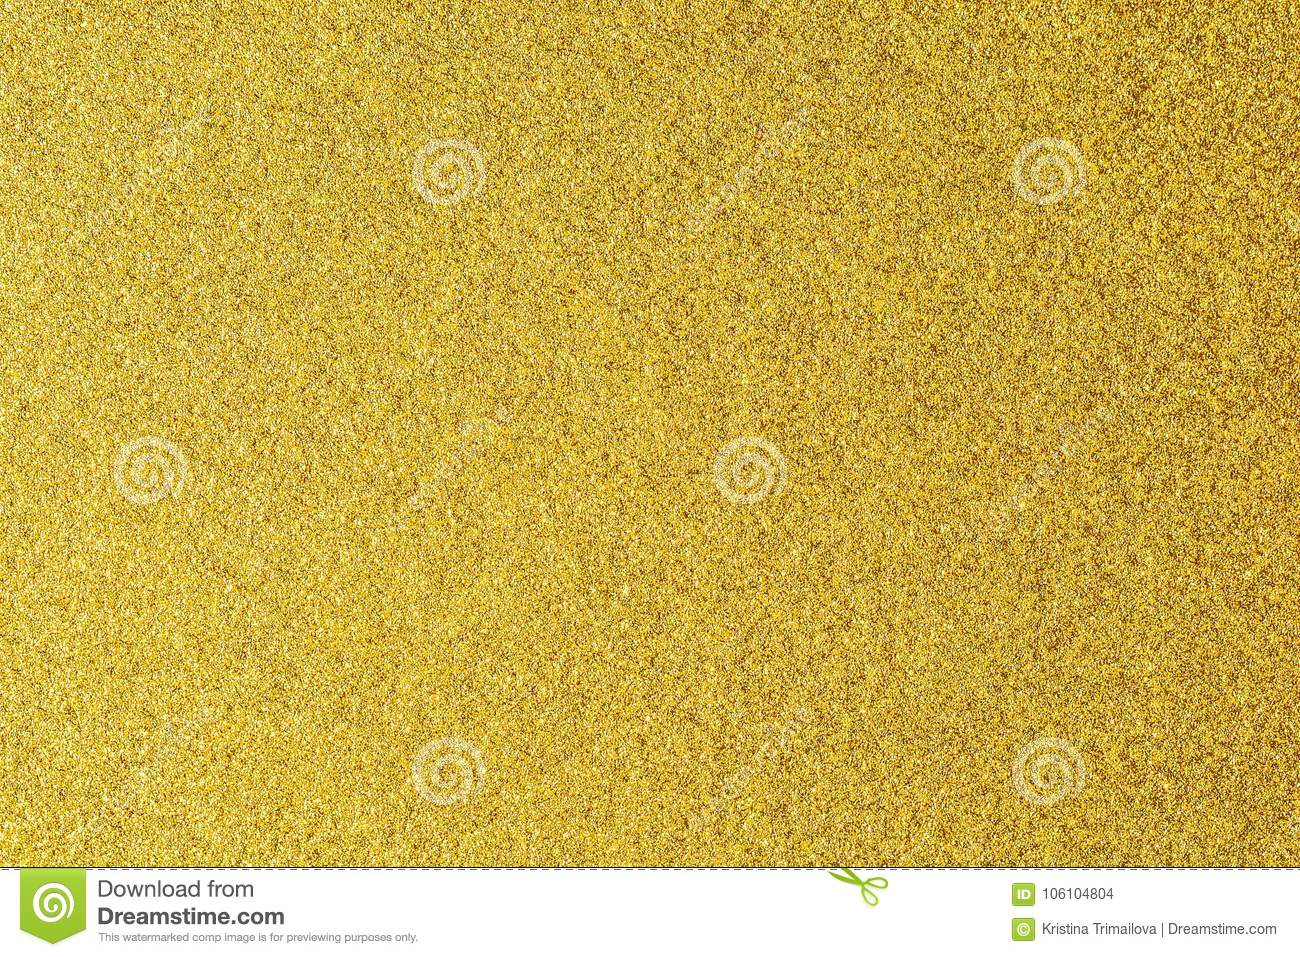 Details of golden texture background. Gold color paint wall. Luxury golden background and wallpaper. Gold foil or